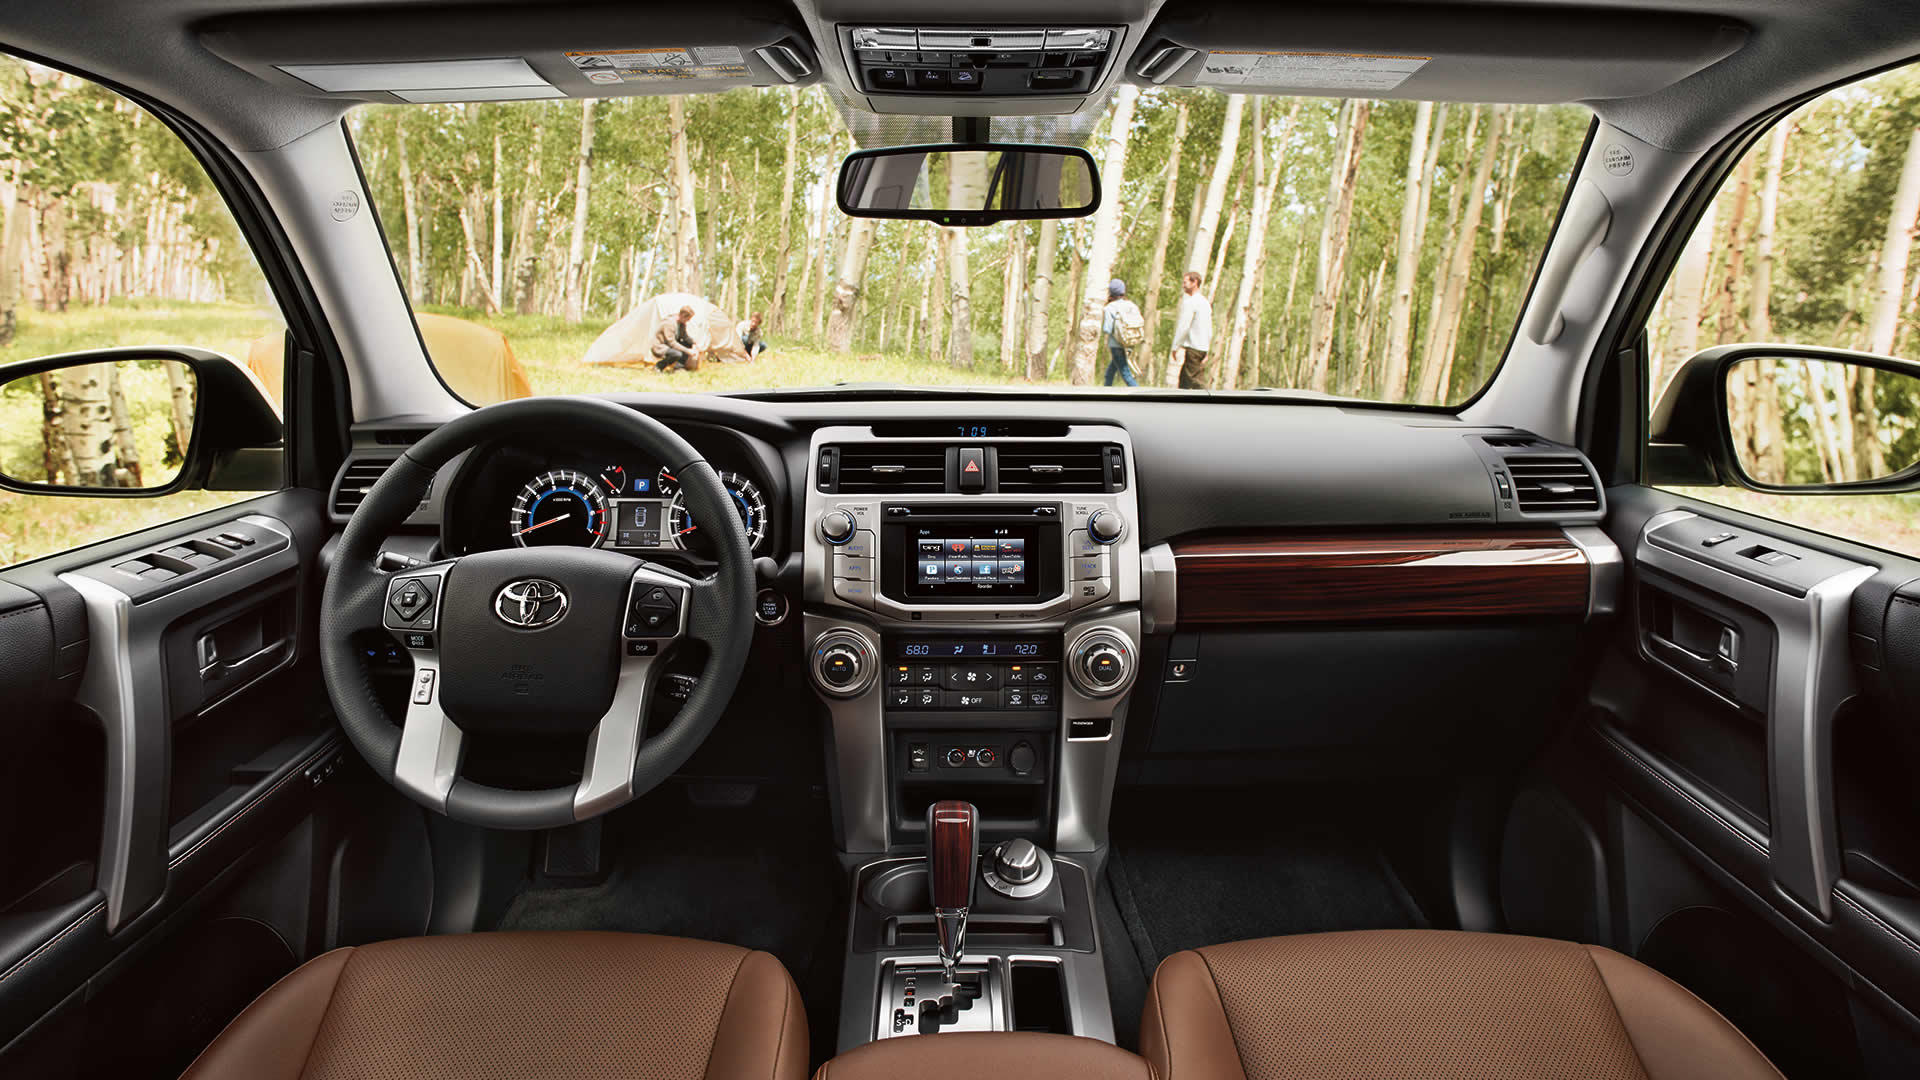 The Star Safety System Comes Standard On The 2014 Toyota ...